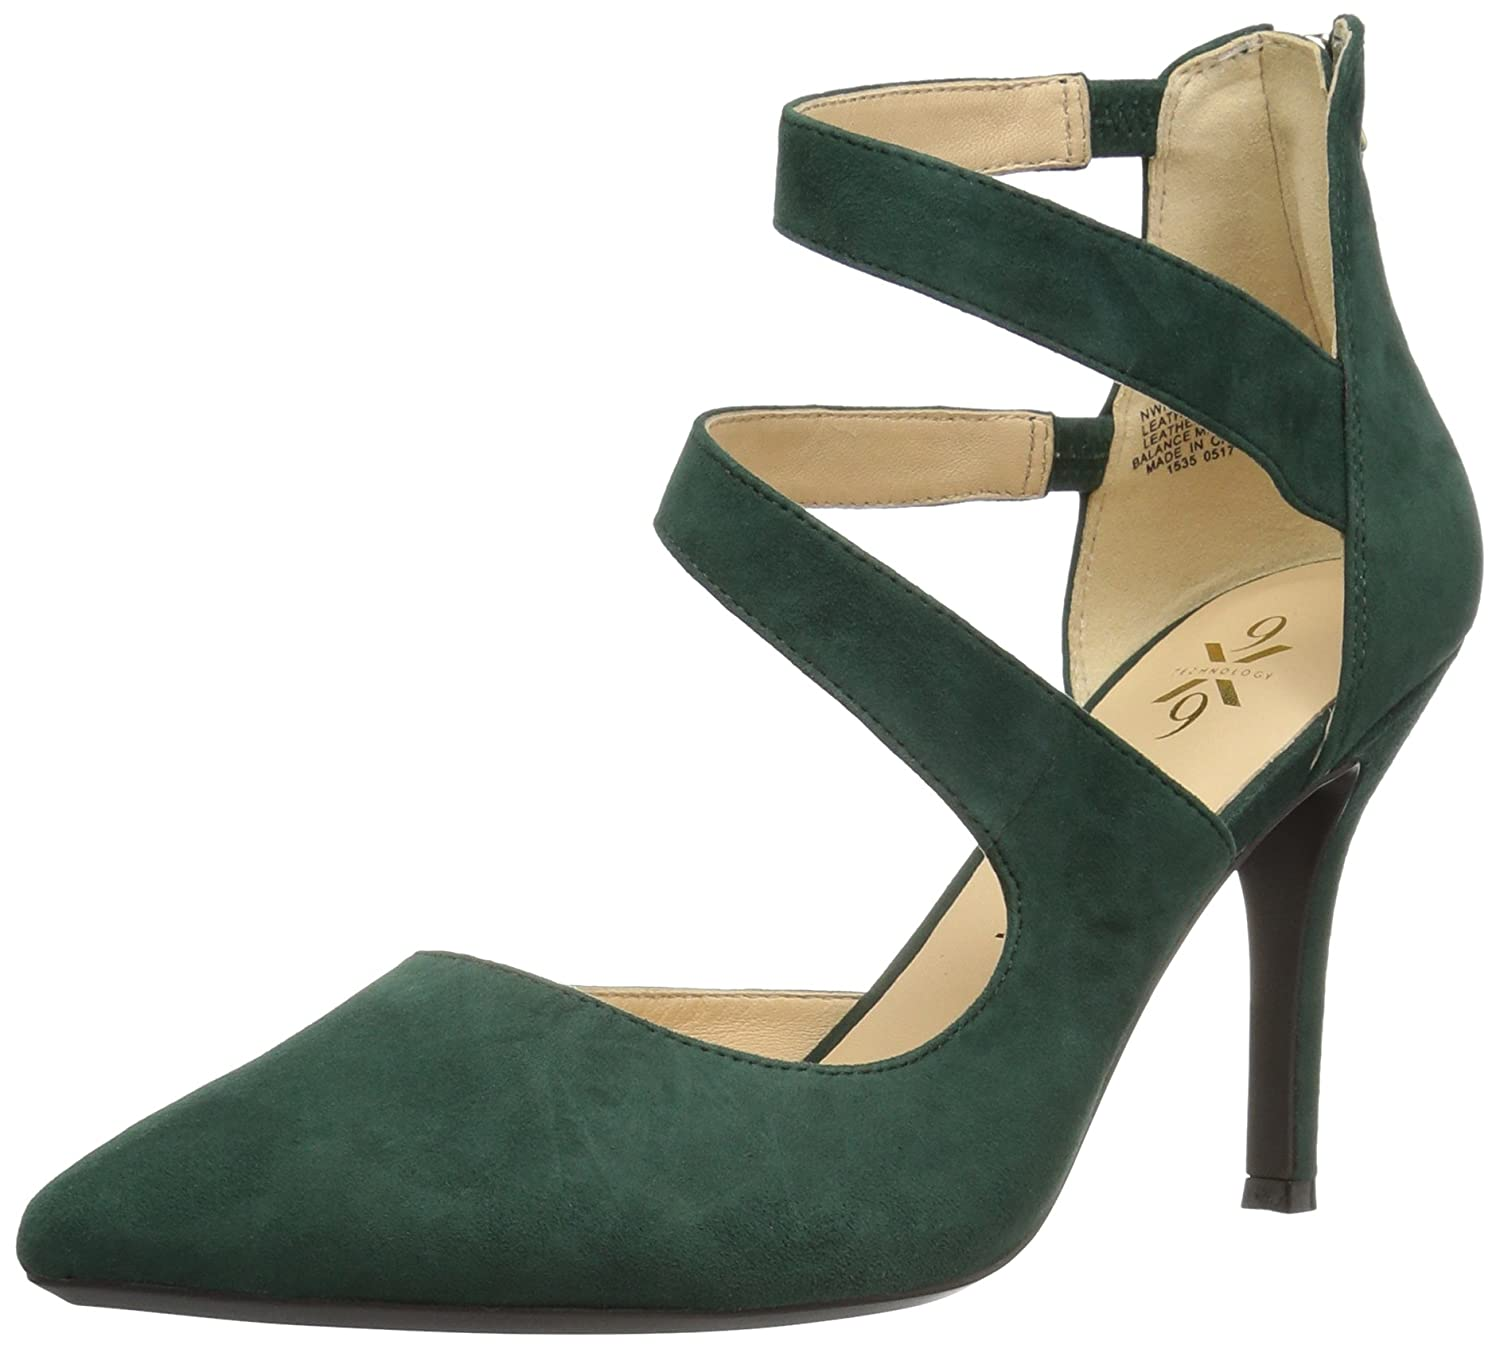 Nine West Women's Florent Suede B01N6T6R8Y 11 B(M) US|Dark Green